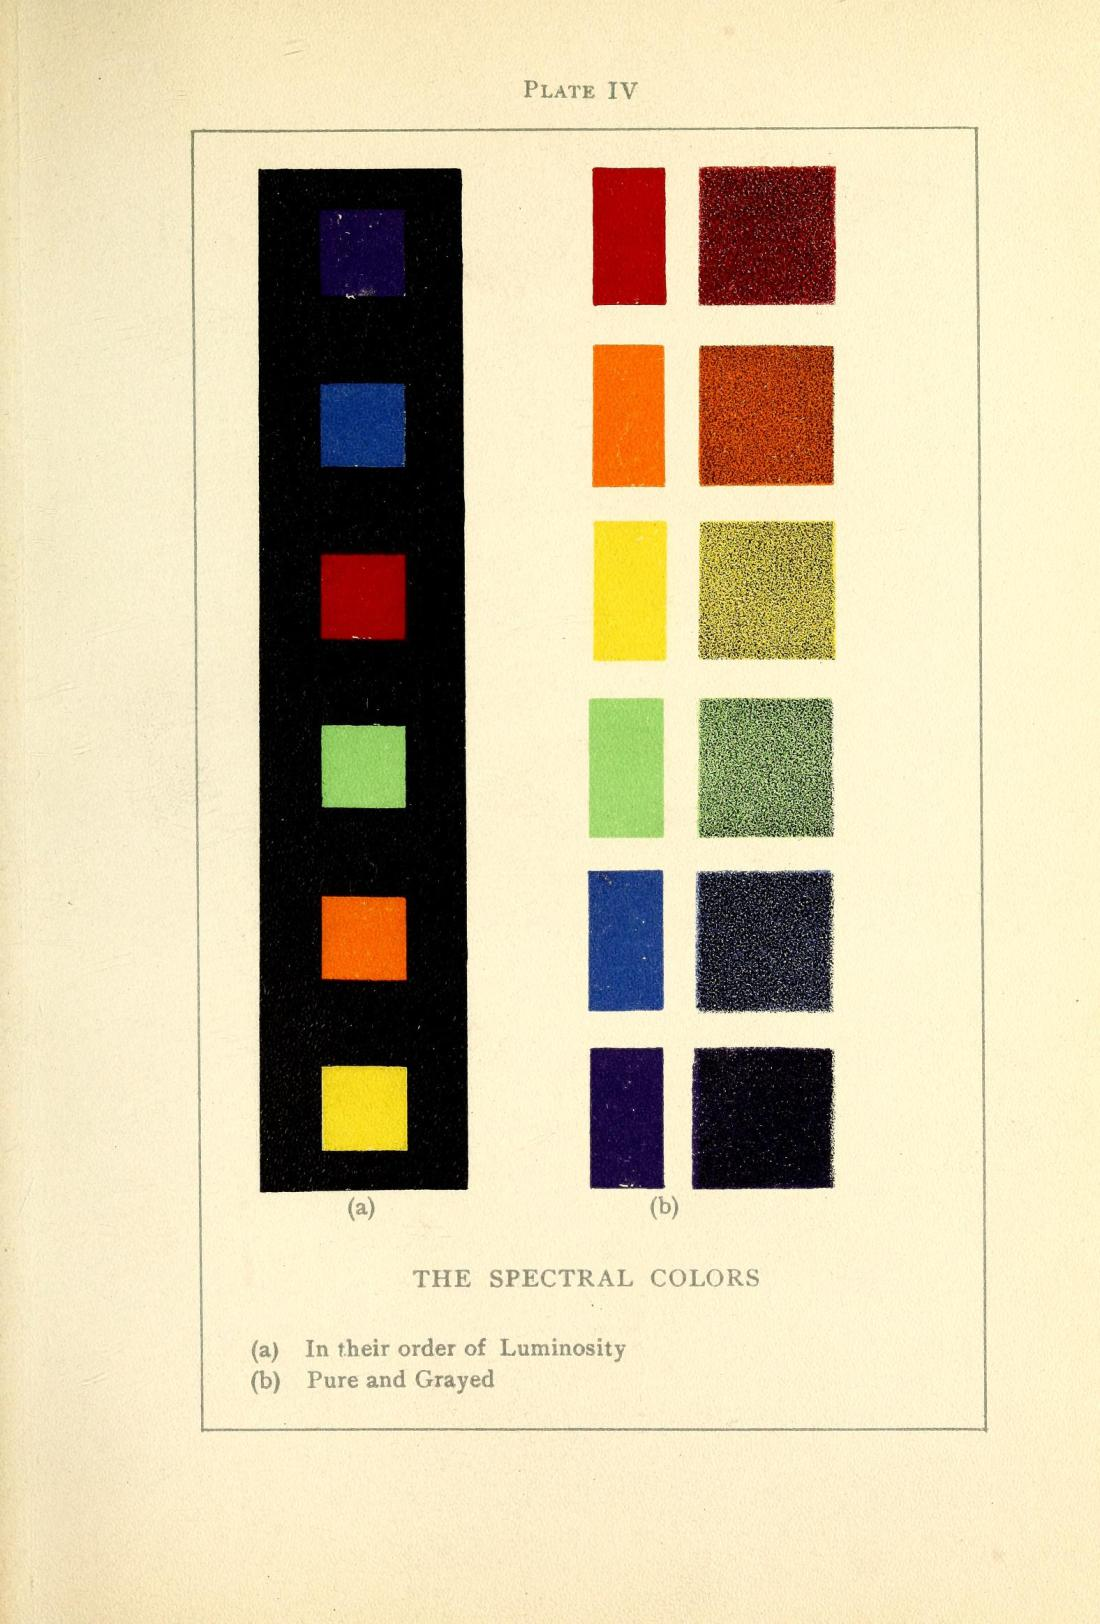 """The Spectral Colors, Figures A and B. Figure A: In their order of Luminosity. Figure B: Pure and Grayed."" Plate IV, page 167."